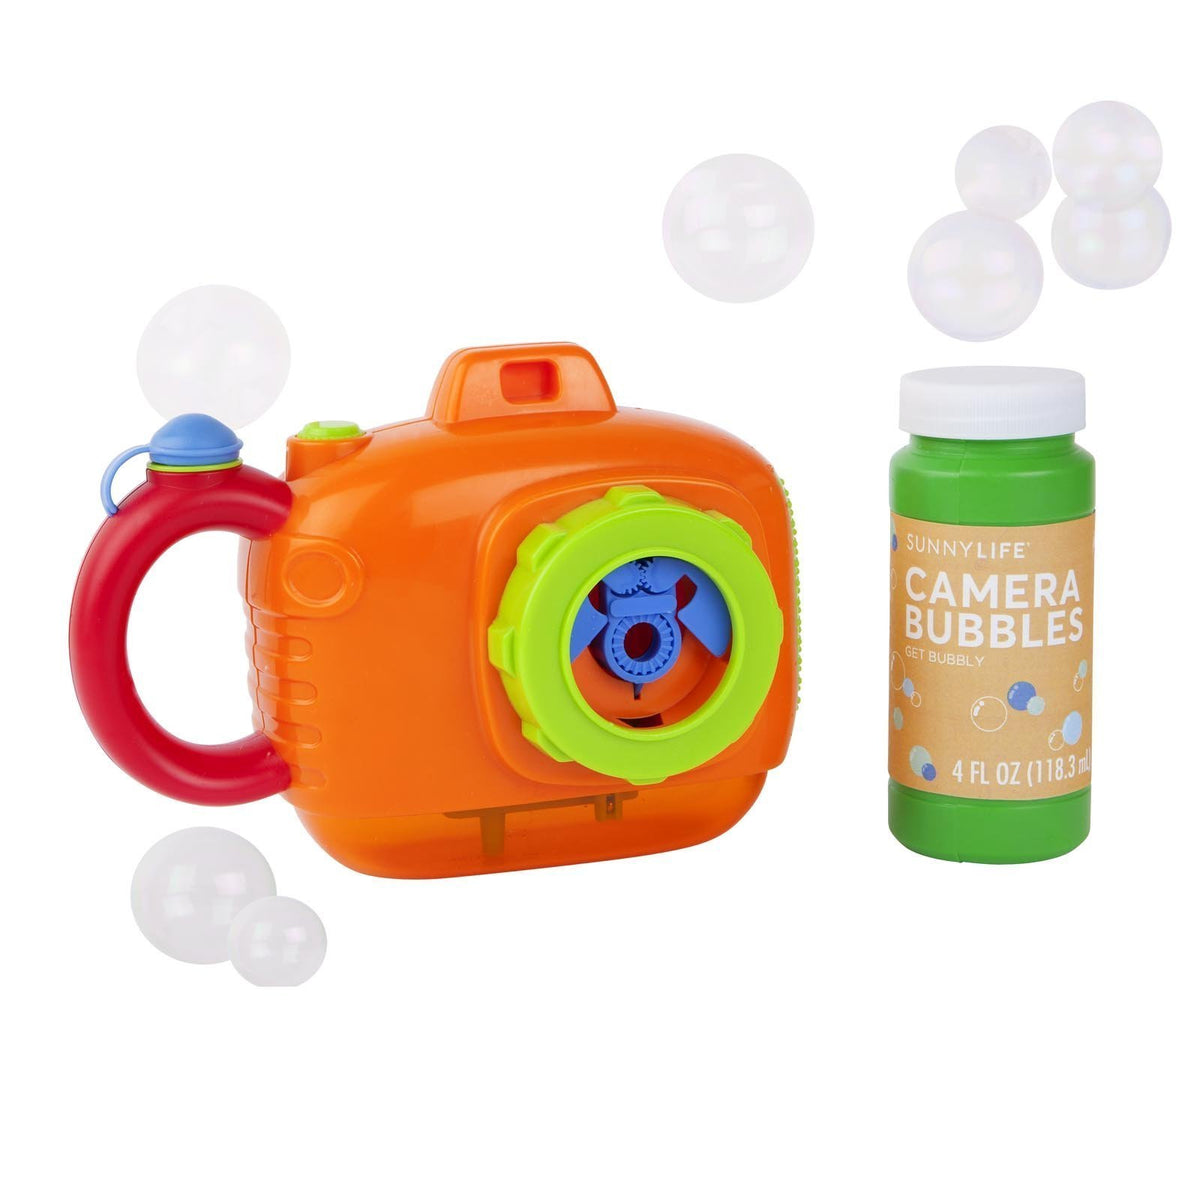 Sunnylife | Bubbles | Camera Orange | Sunnykids